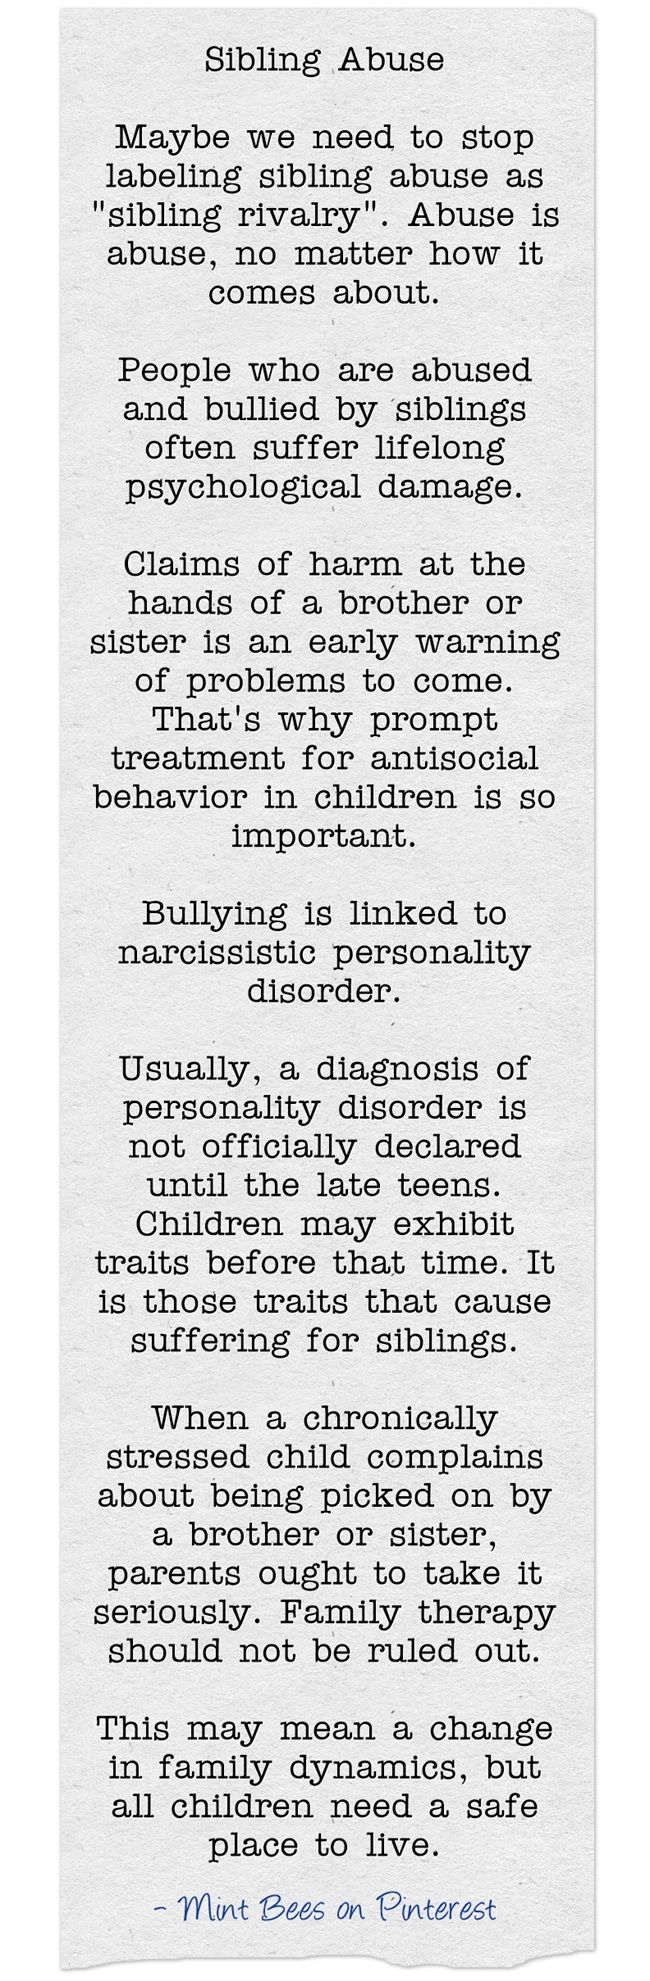 Sad quotes about bullying - 2493 Best Toxic People Images On Pinterest Anti Bullying Bullying Quotes And Bullying Lessons